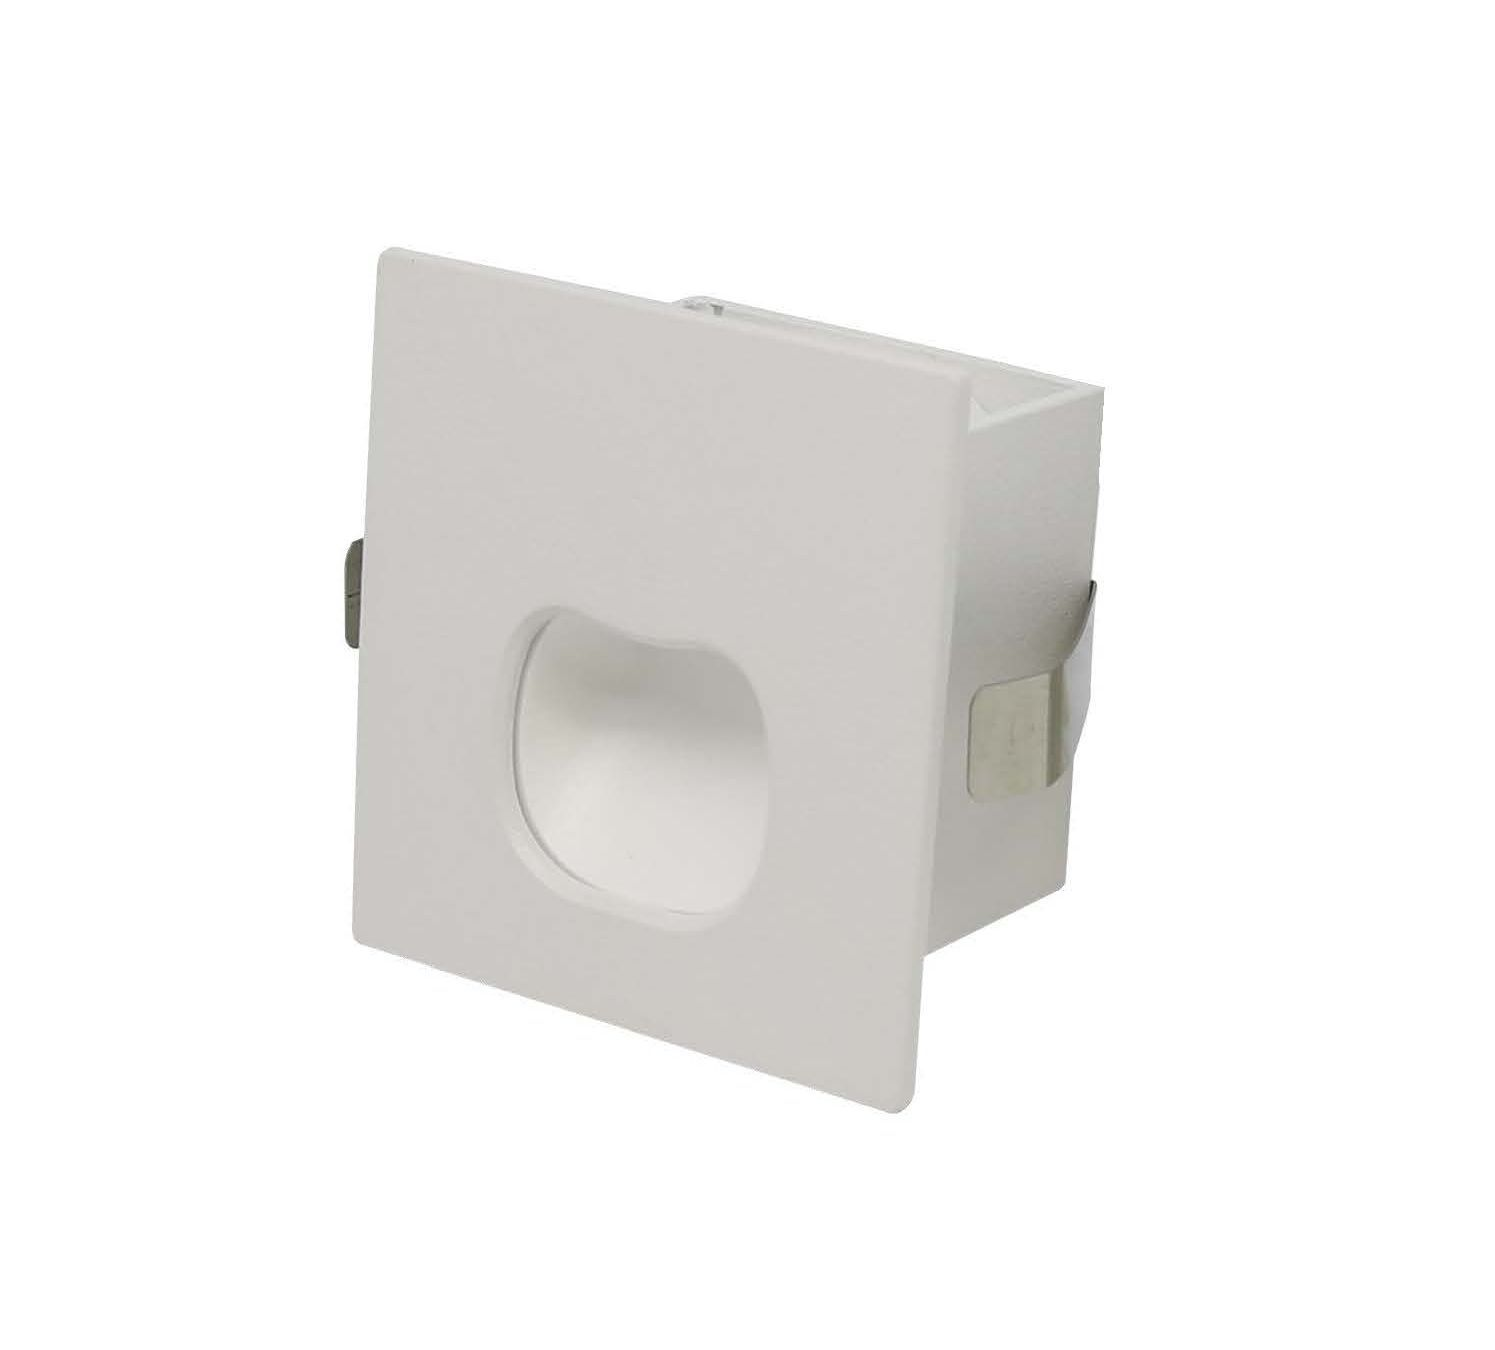 APPLE Recessed Square LED Wall Lights